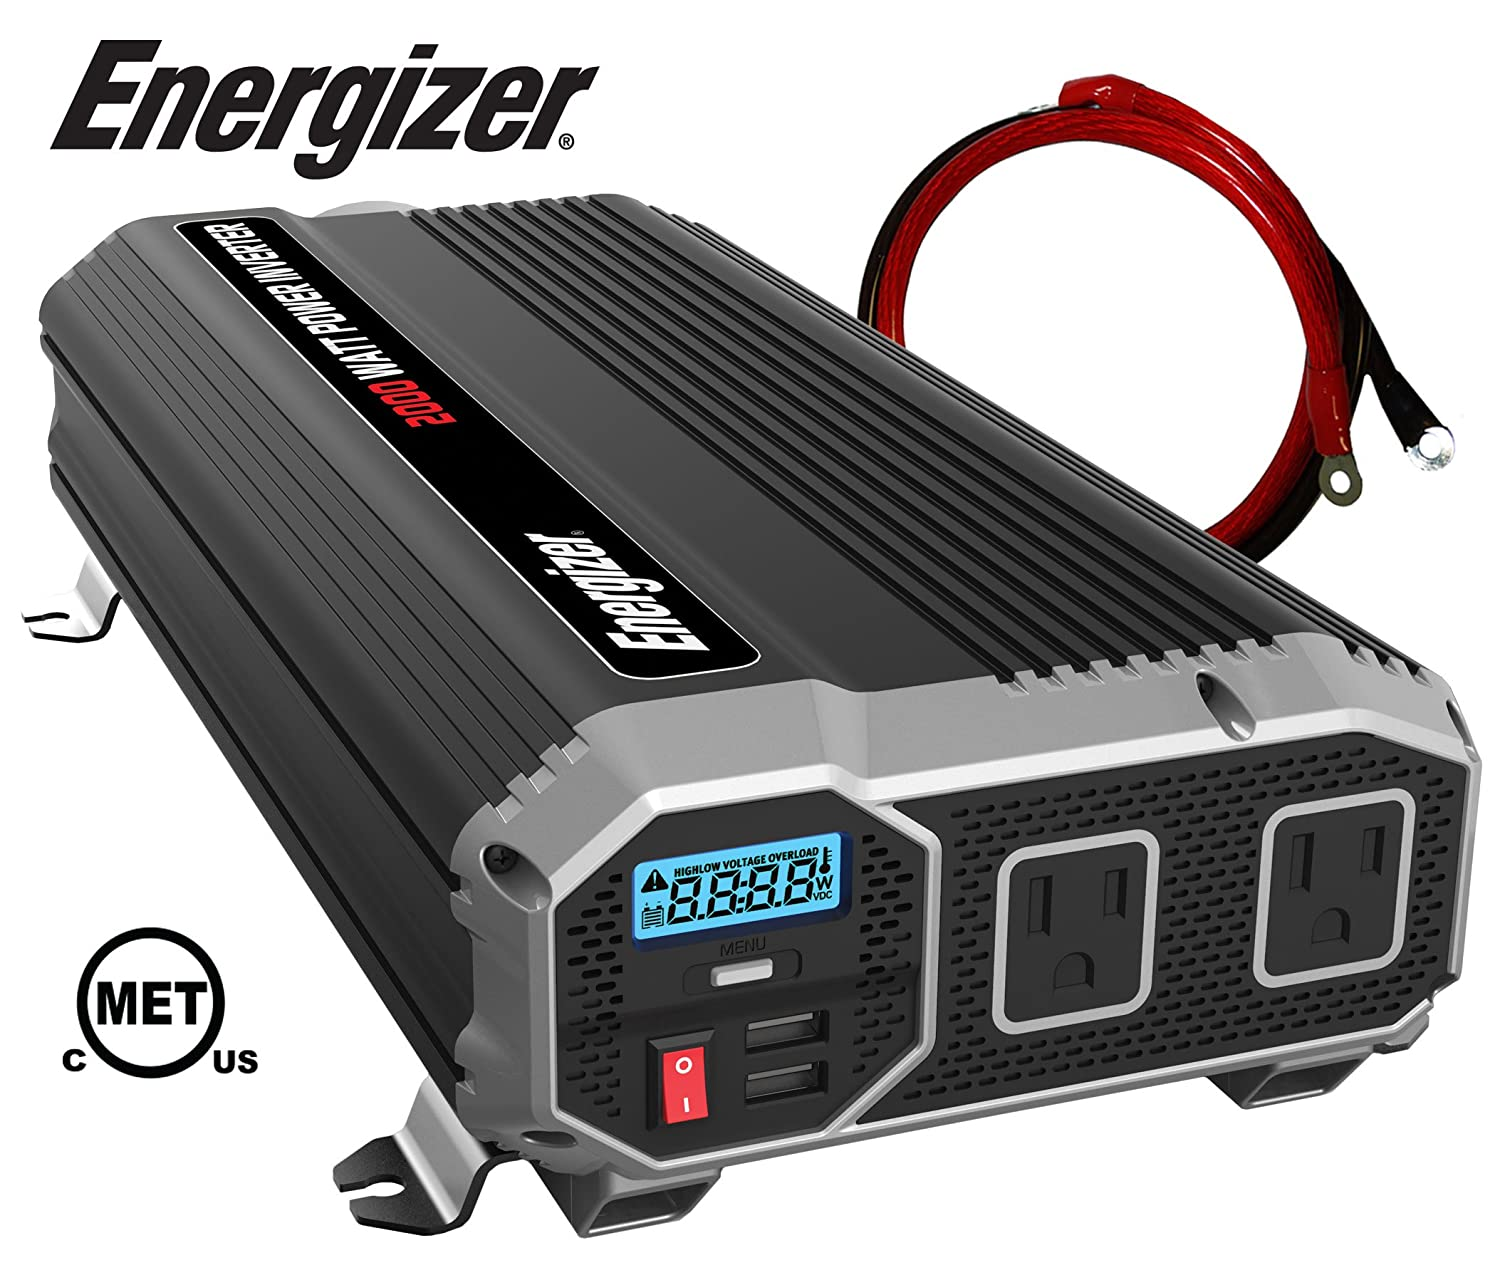 ENERGIZER 2000 Watt 12V Power Inverter, Dual 110V AC Outlets, Automotive Back Up Power Supply Car Inverter,Converts 120 Volt AC with 2 USB ports 2.4A Each